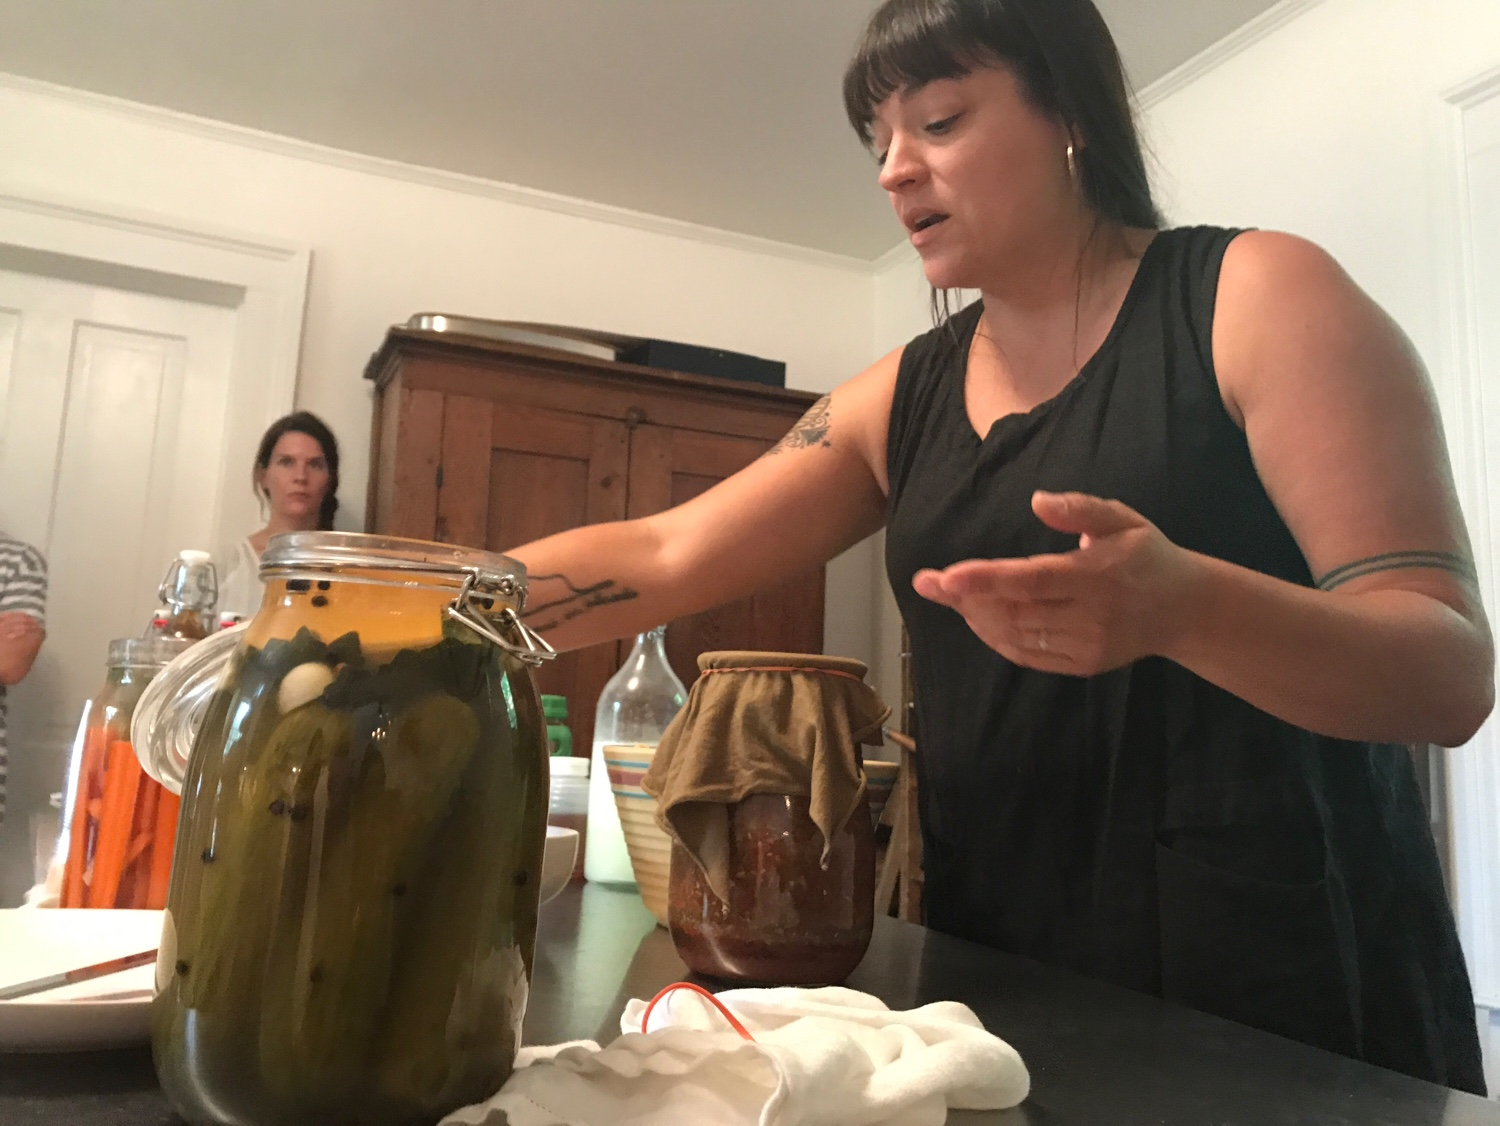 Health education that is fun,interactive,doable -- and fits into real life! Mother, maker and fermented food enthusiast, Amanda Kapasouz, gives a demonstration on some of her favorite homemade ferments.